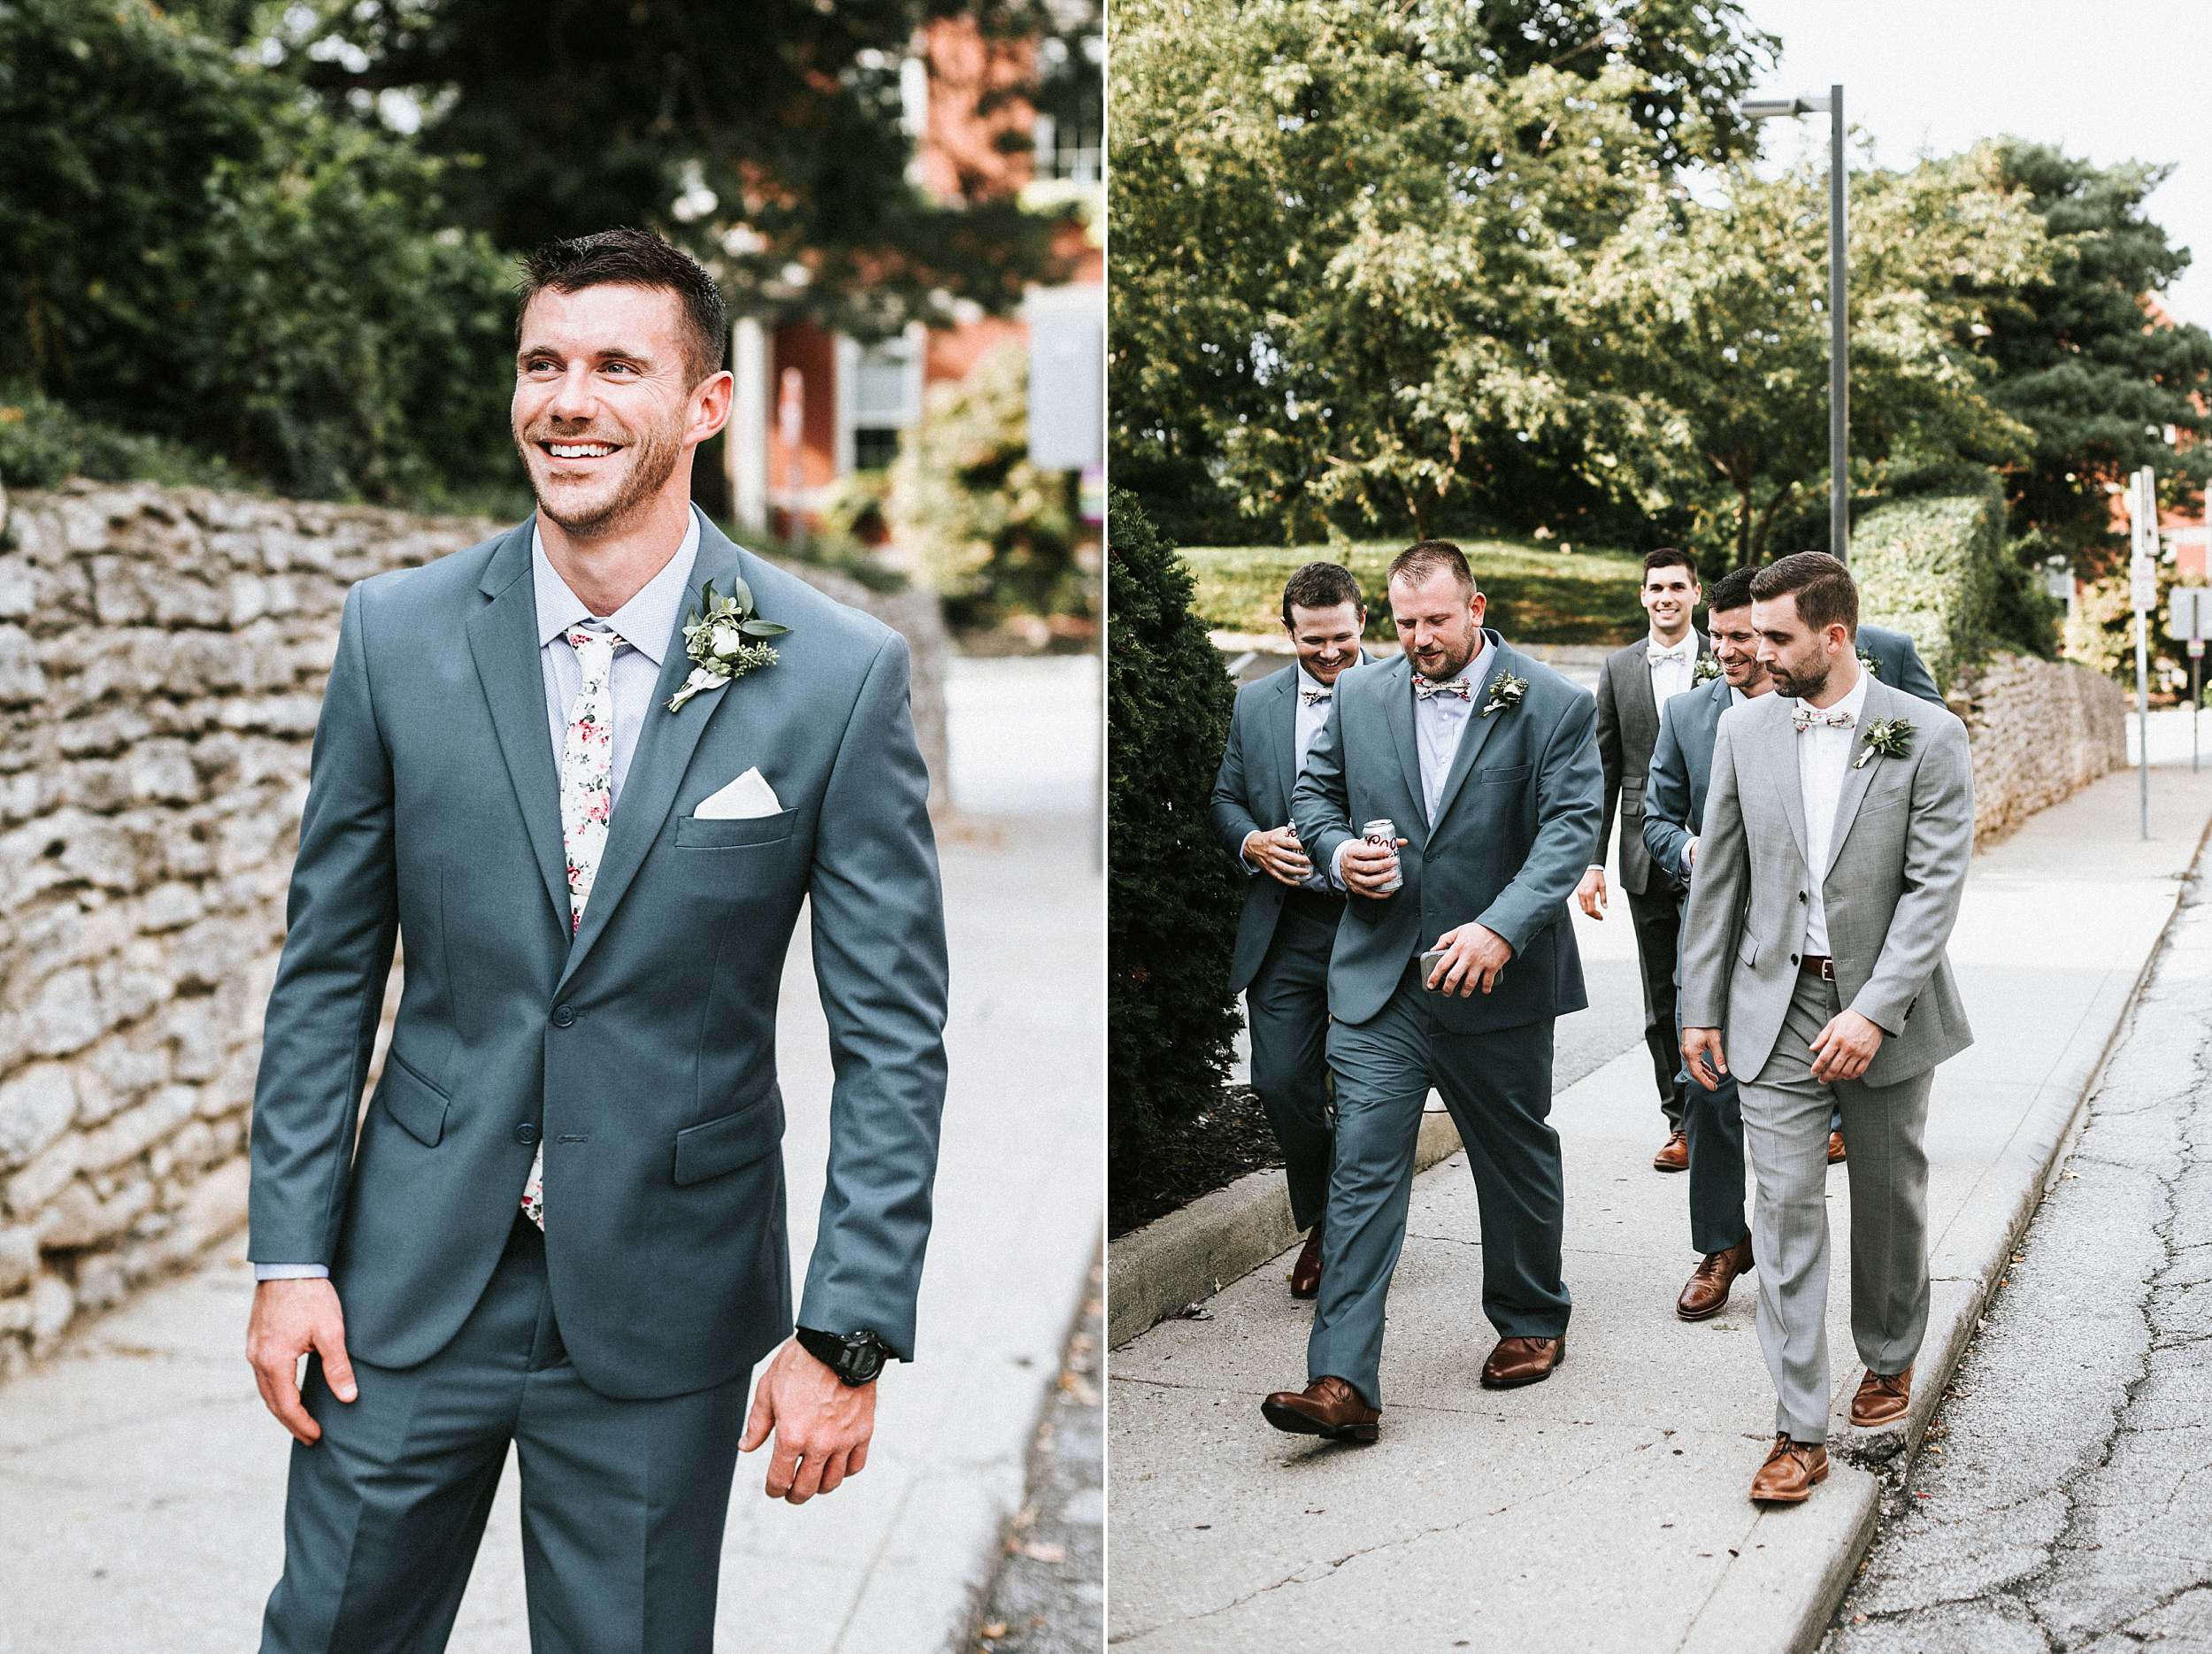 Brooke Townsend Photography - Cincinnati Wedding Photographer (70 of 170).jpg